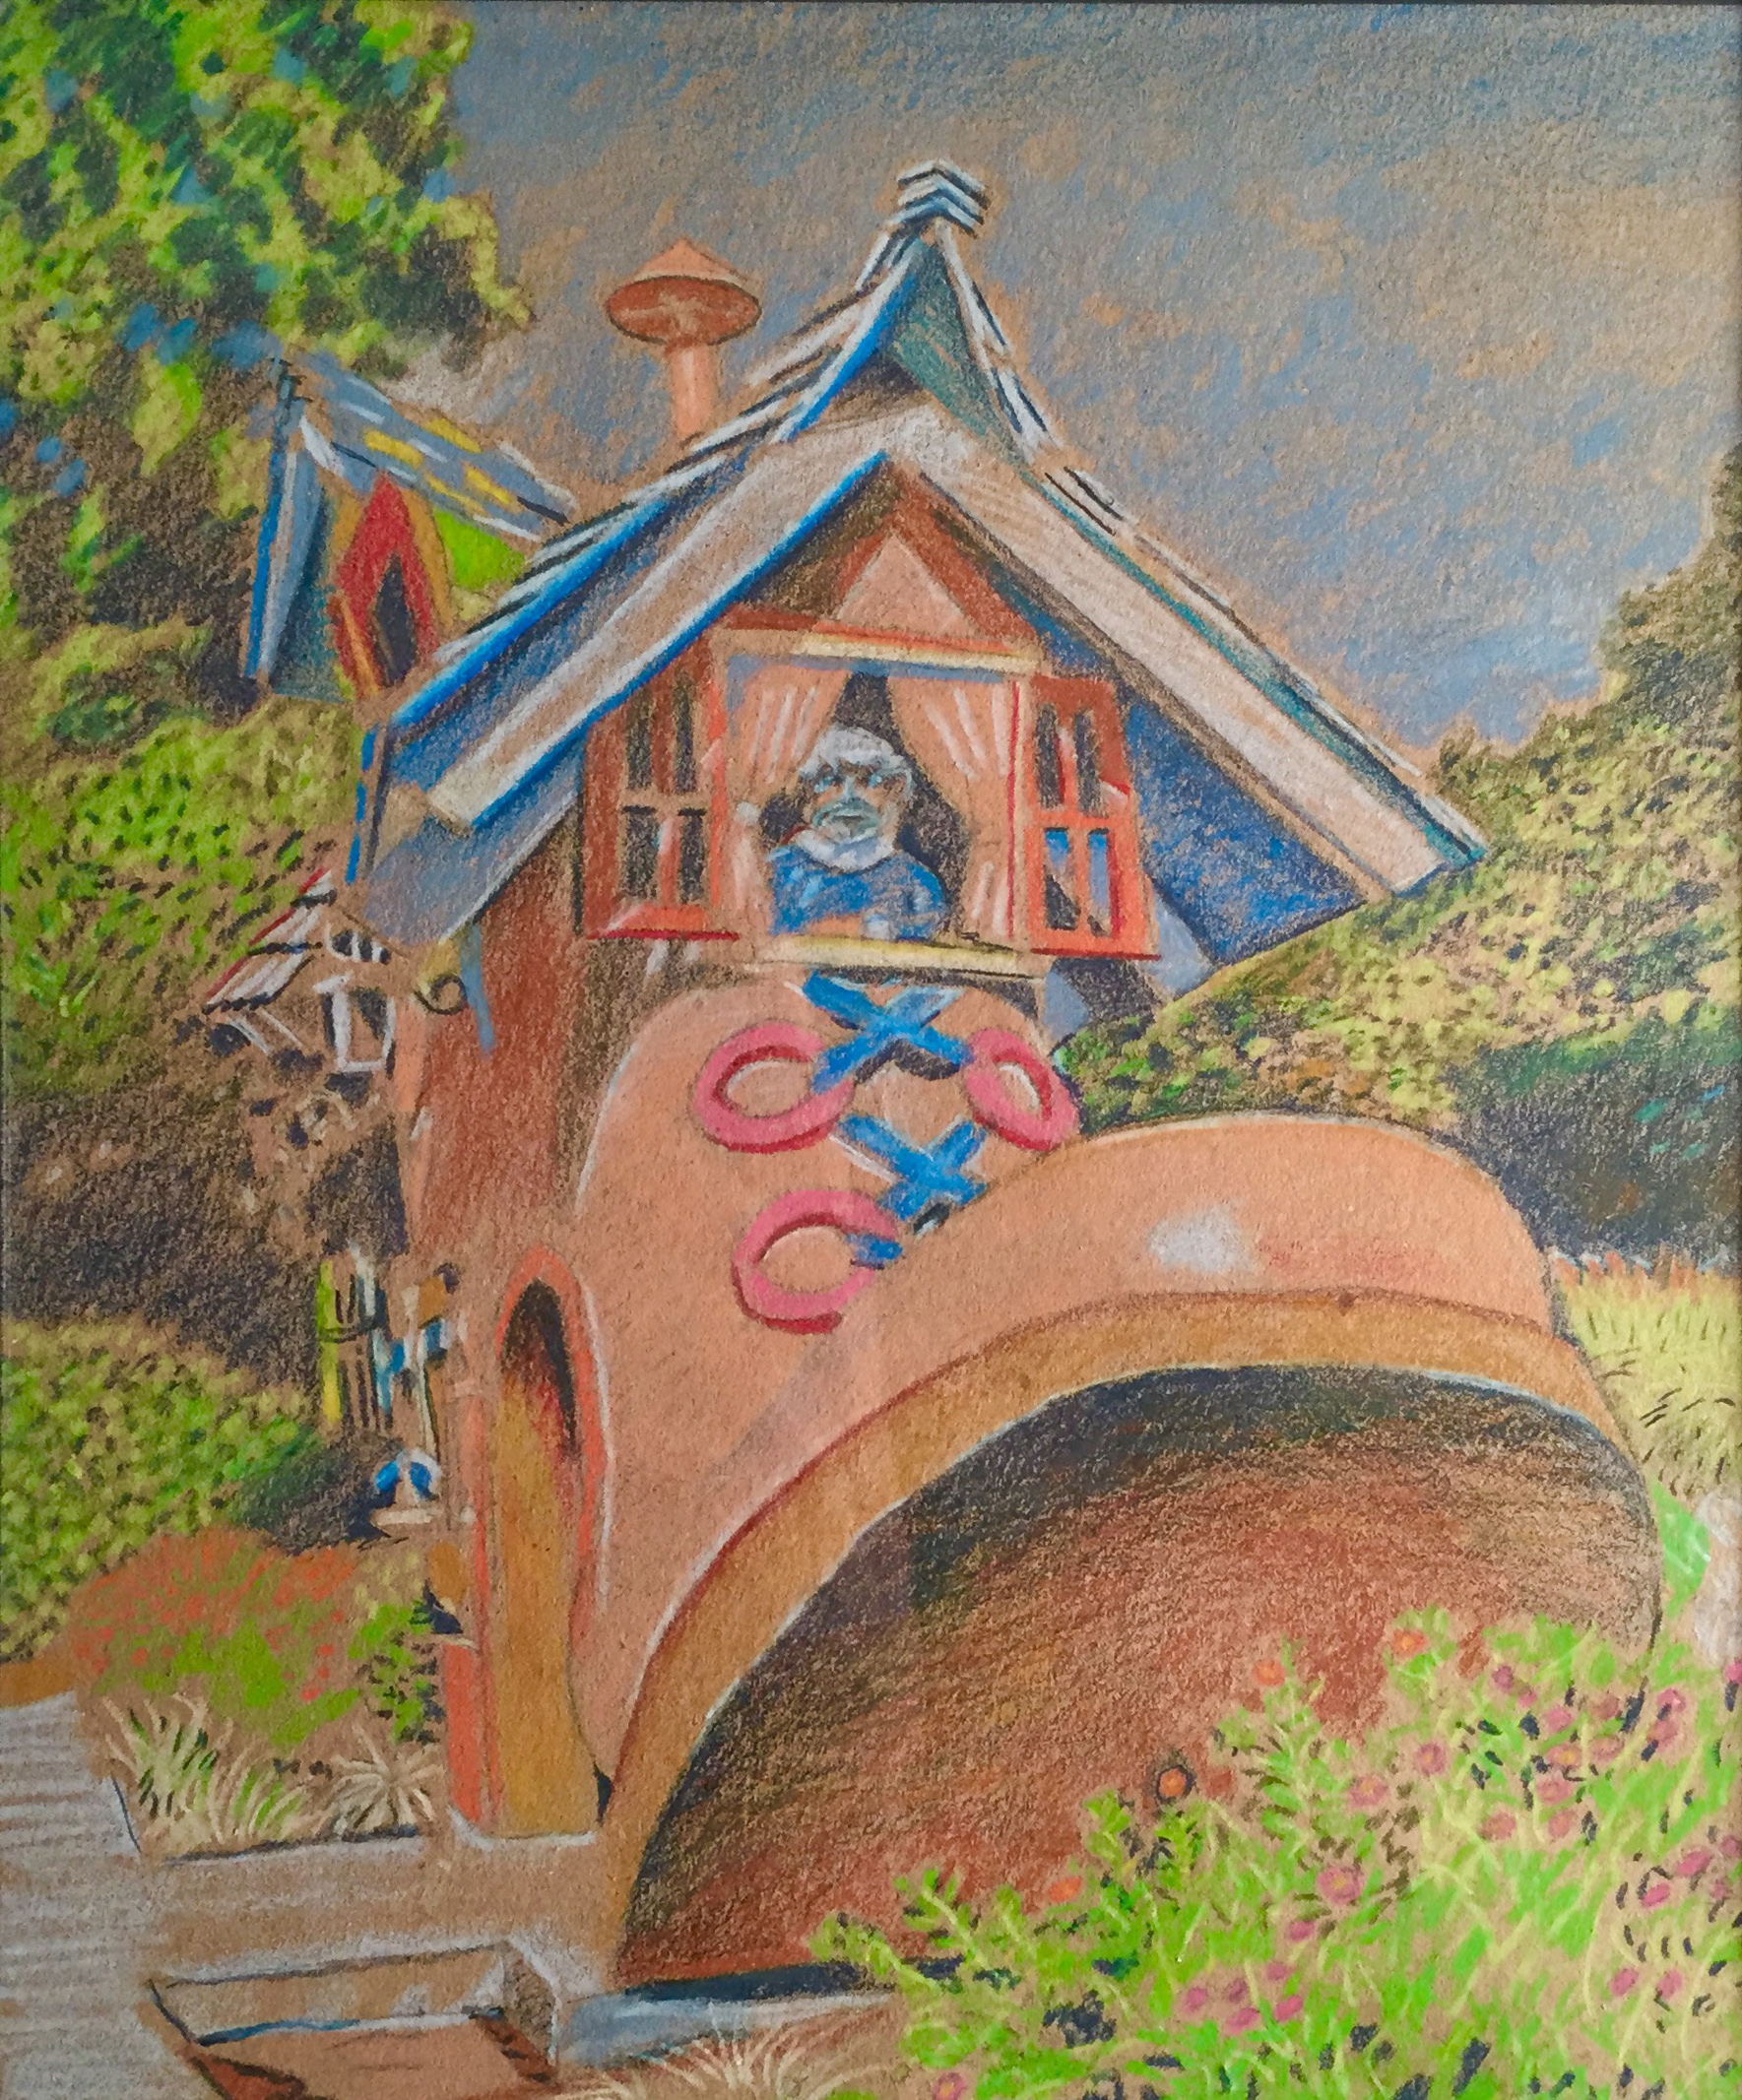 """Title: """"Shoe Entryway, Children's Fairyland, Oakland"""" 11-15    Media: Prismacolors    Dimensions: 8"""" x 11""""    Collection of: The Artist"""